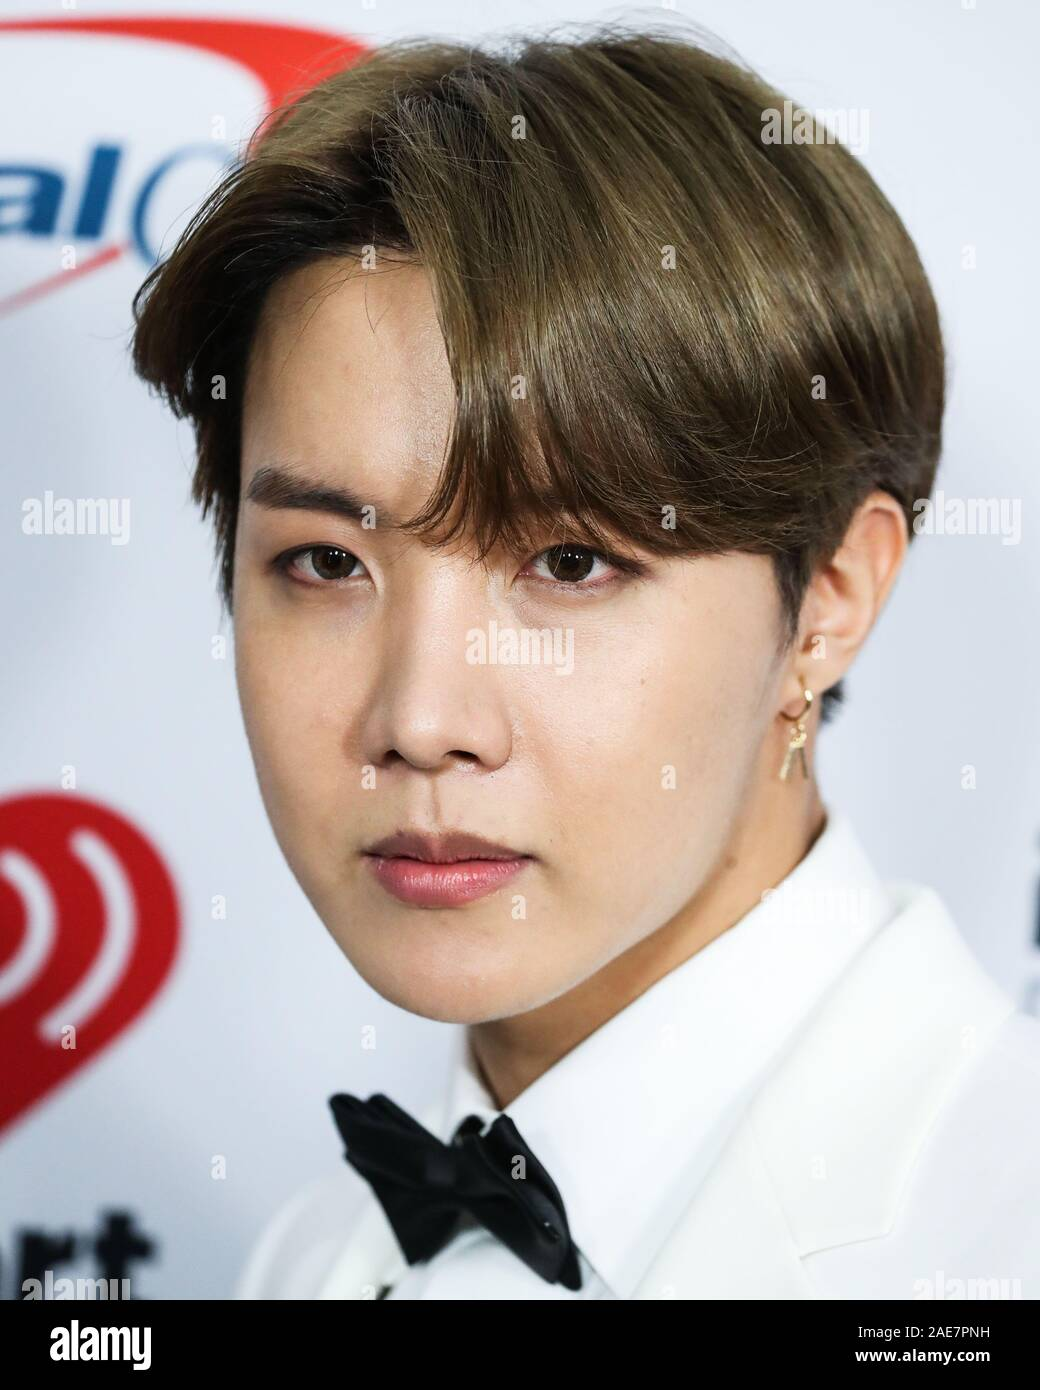 inglewood los angeles california usa december 06 jungkook jeon jung kook of bts arrives at 1027 kiis fms jingle ball 2019 held at the forum on december 6 2019 in inglewood los angeles california united states photo by xavier collinimage press agency 2AE7PNH